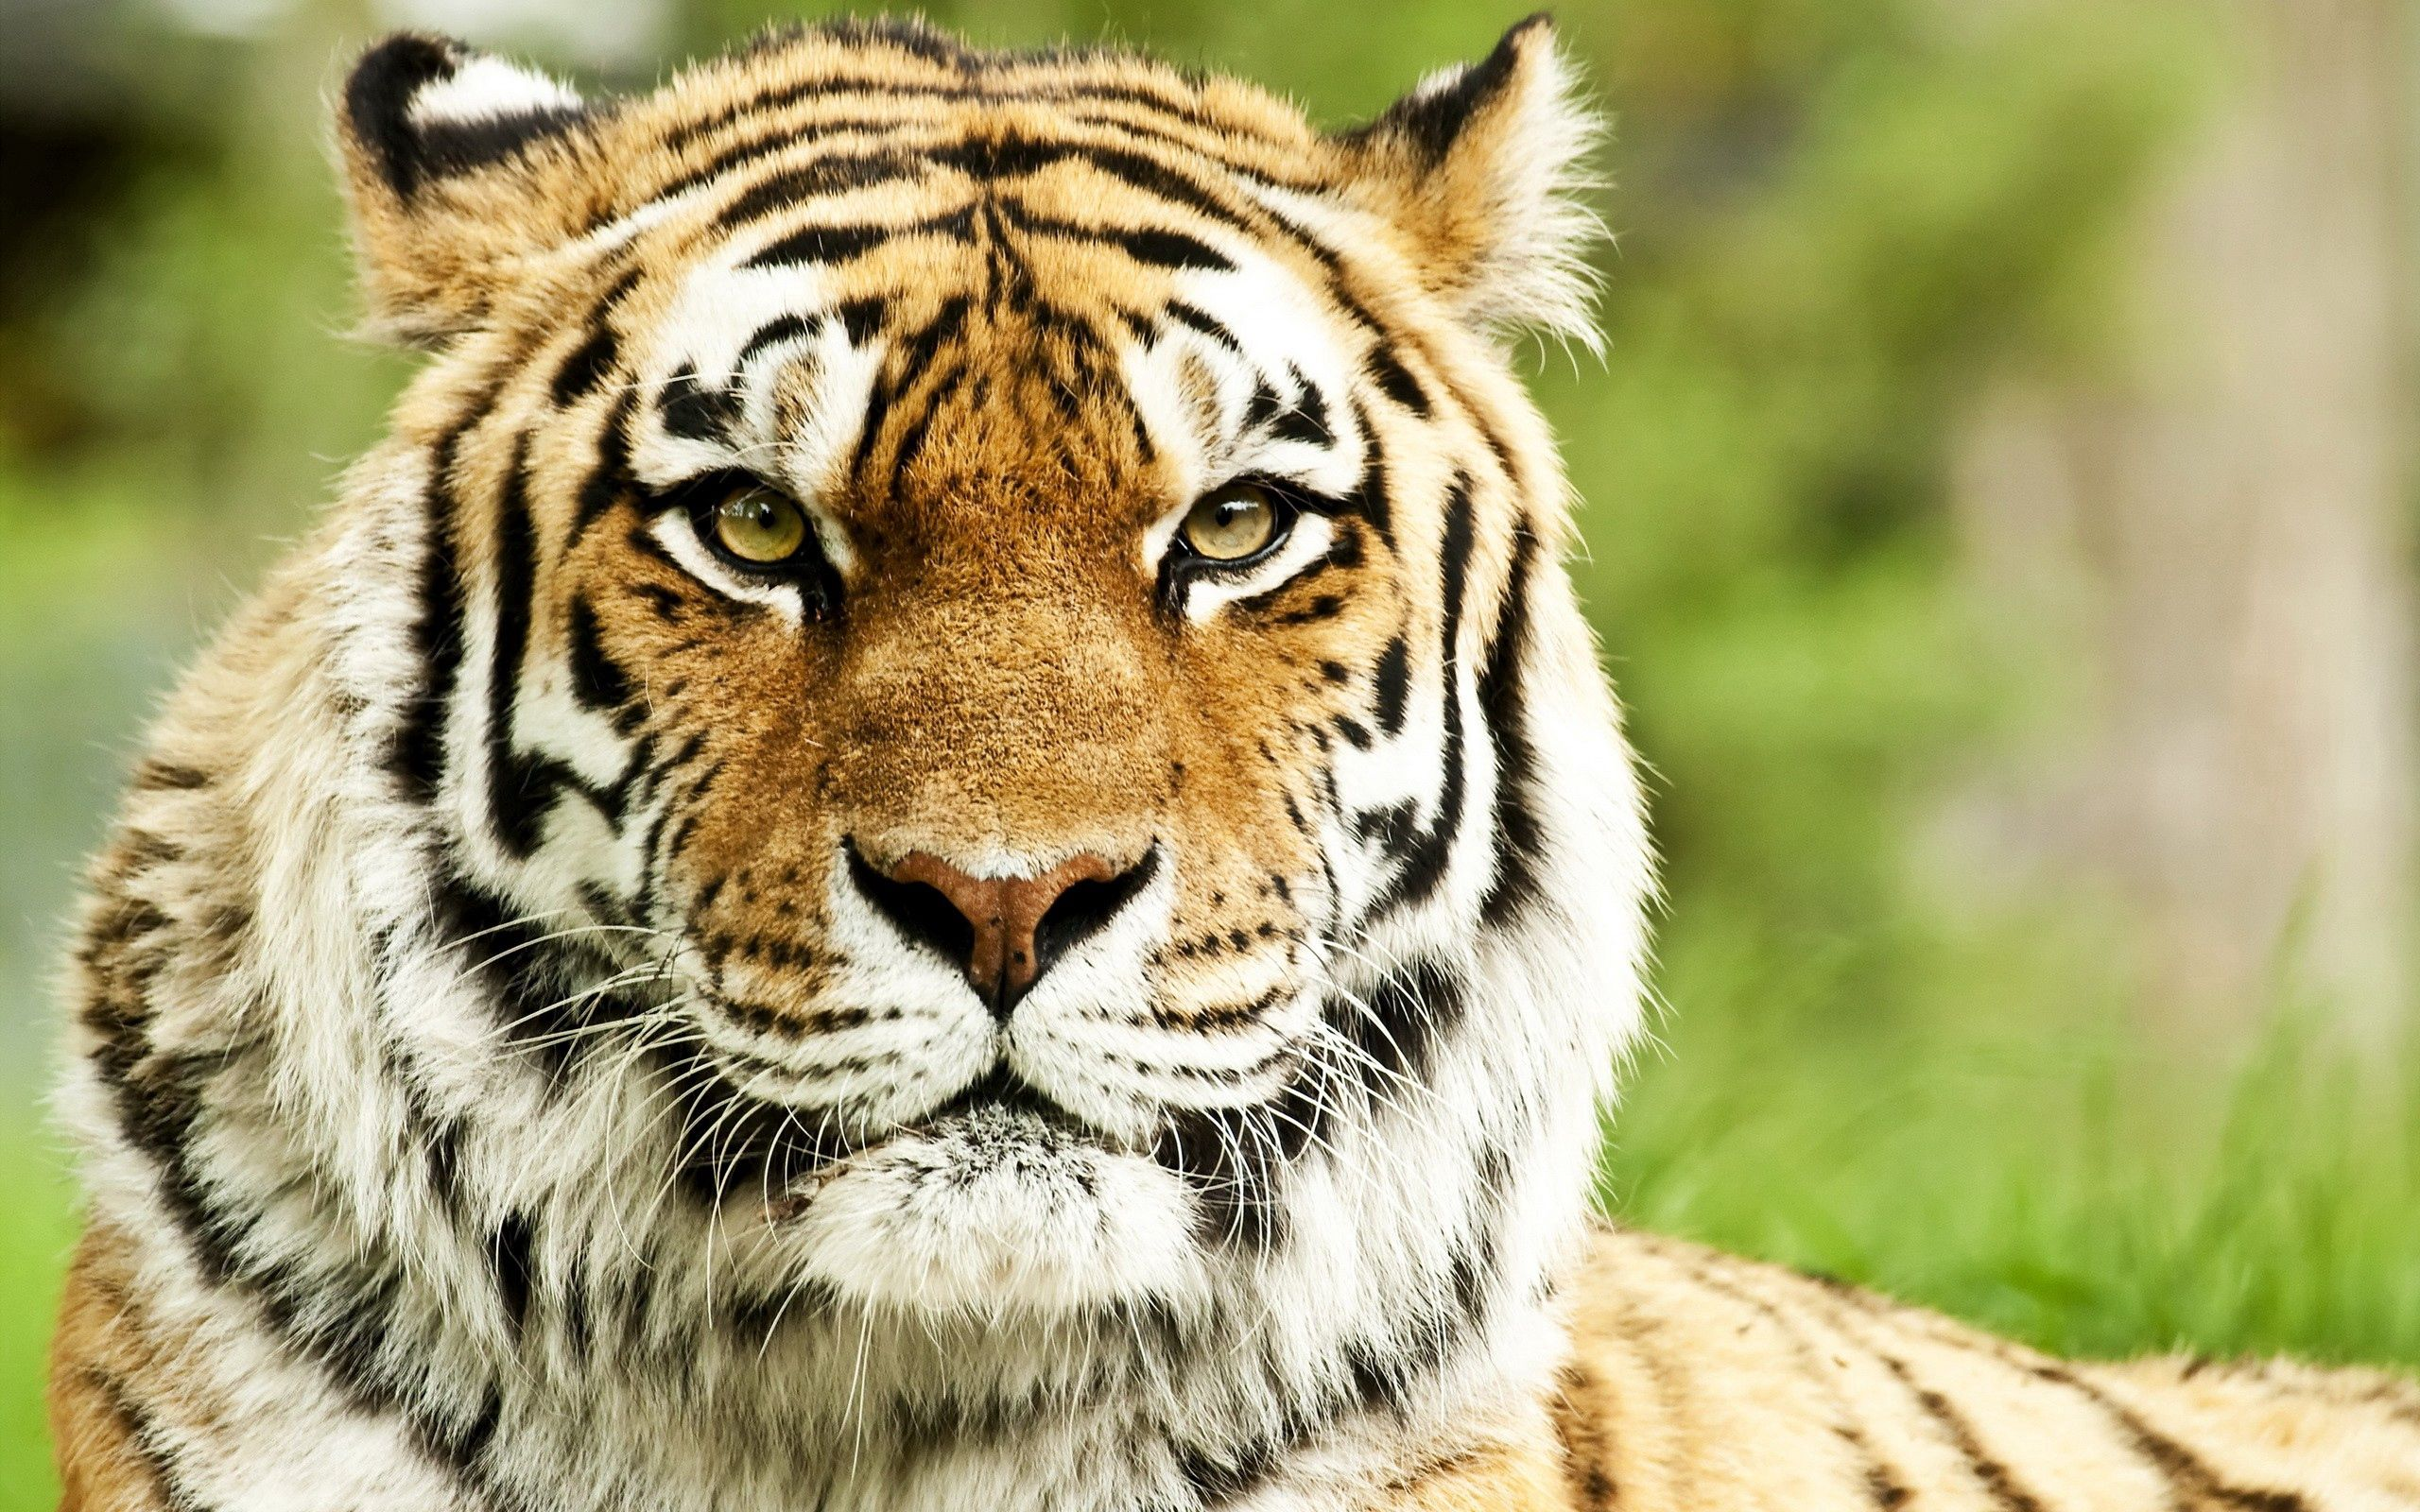 157707 download wallpaper Animals, Tiger, Muzzle, Predator, Striped, Sight, Opinion, Big Cat screensavers and pictures for free